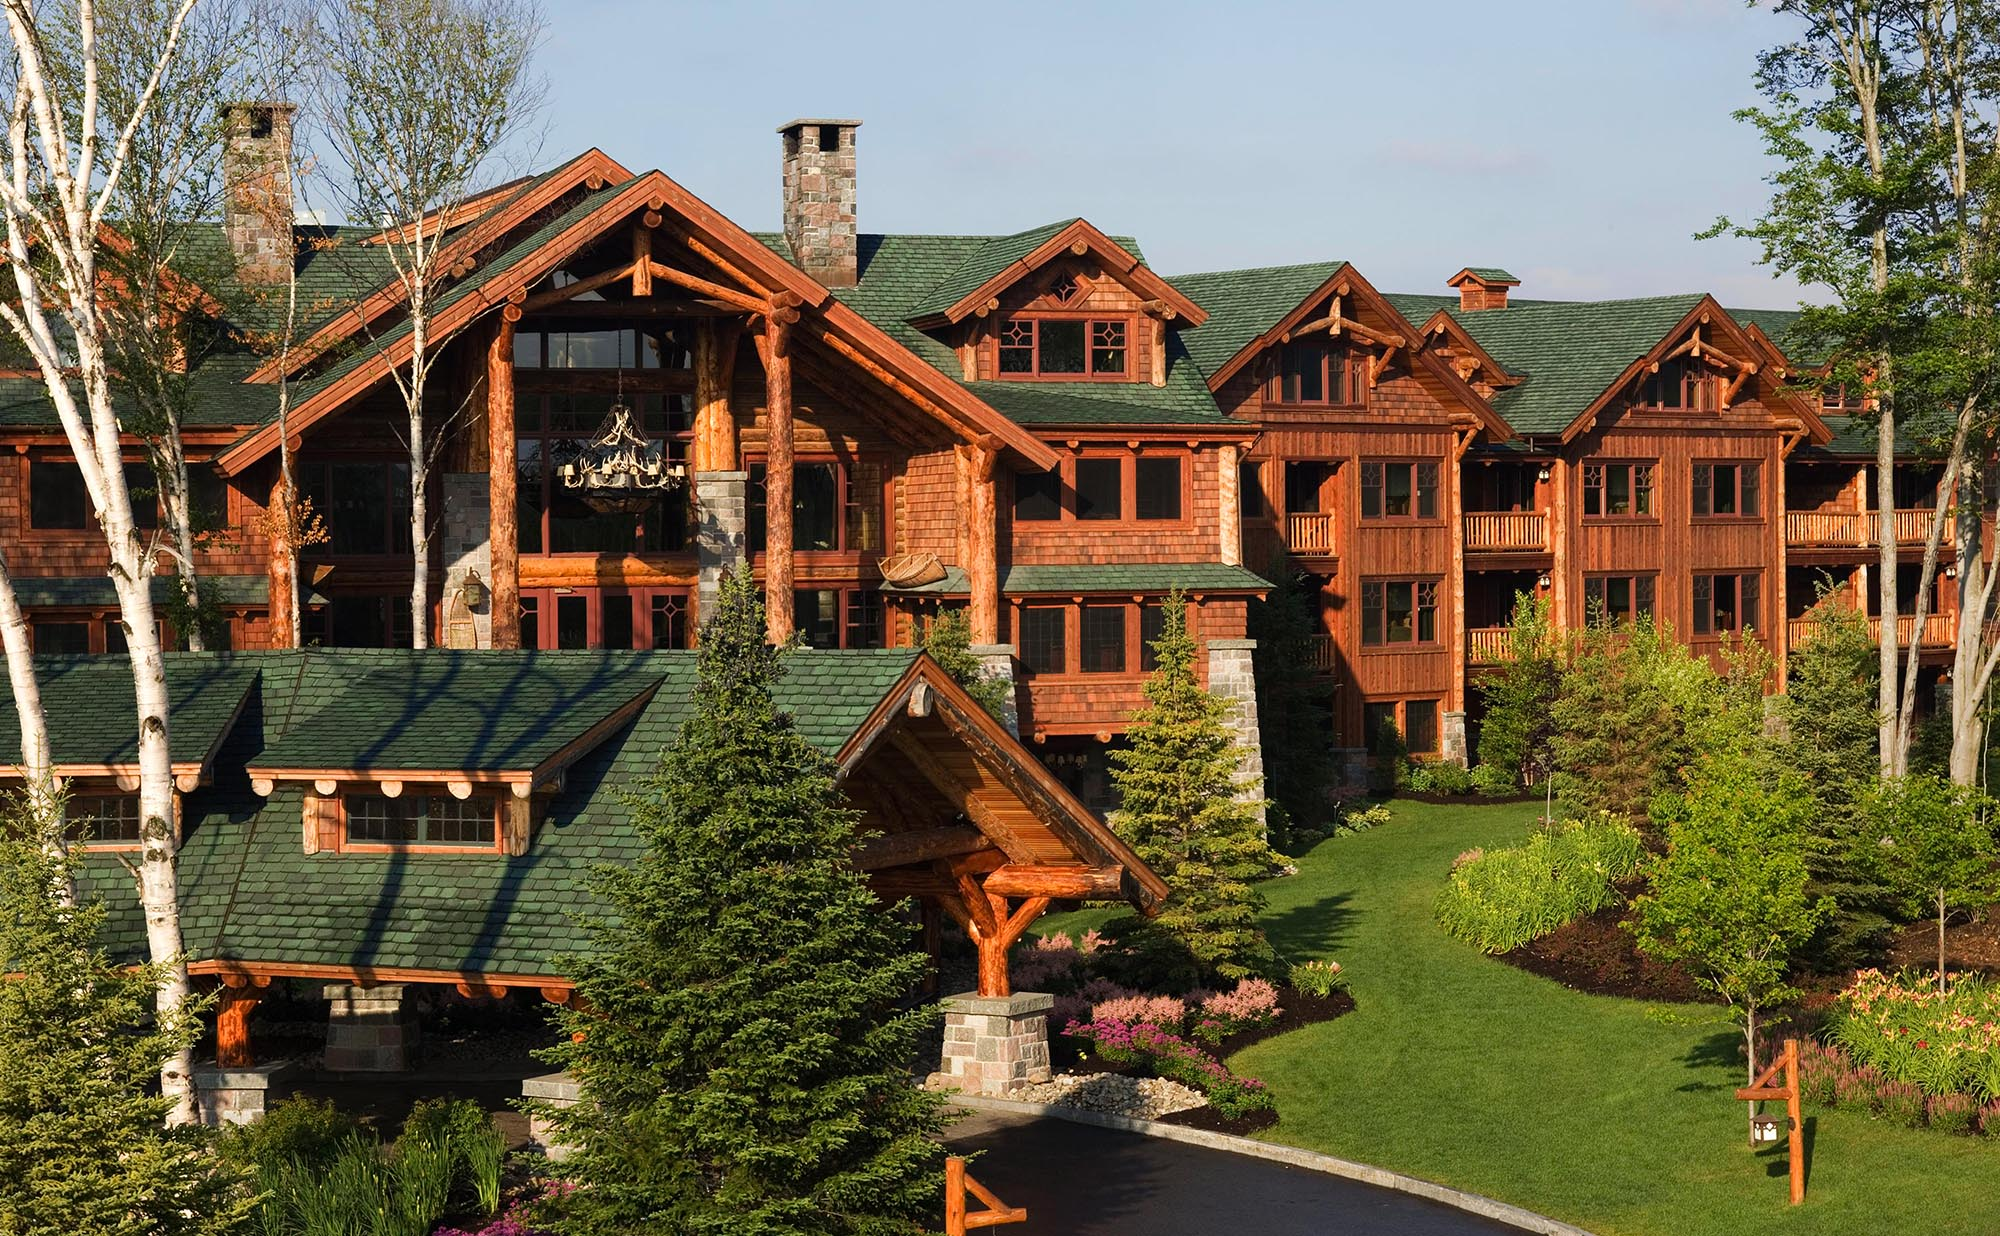 The Whiteface Lodge - Urgo Hotels & Resorts